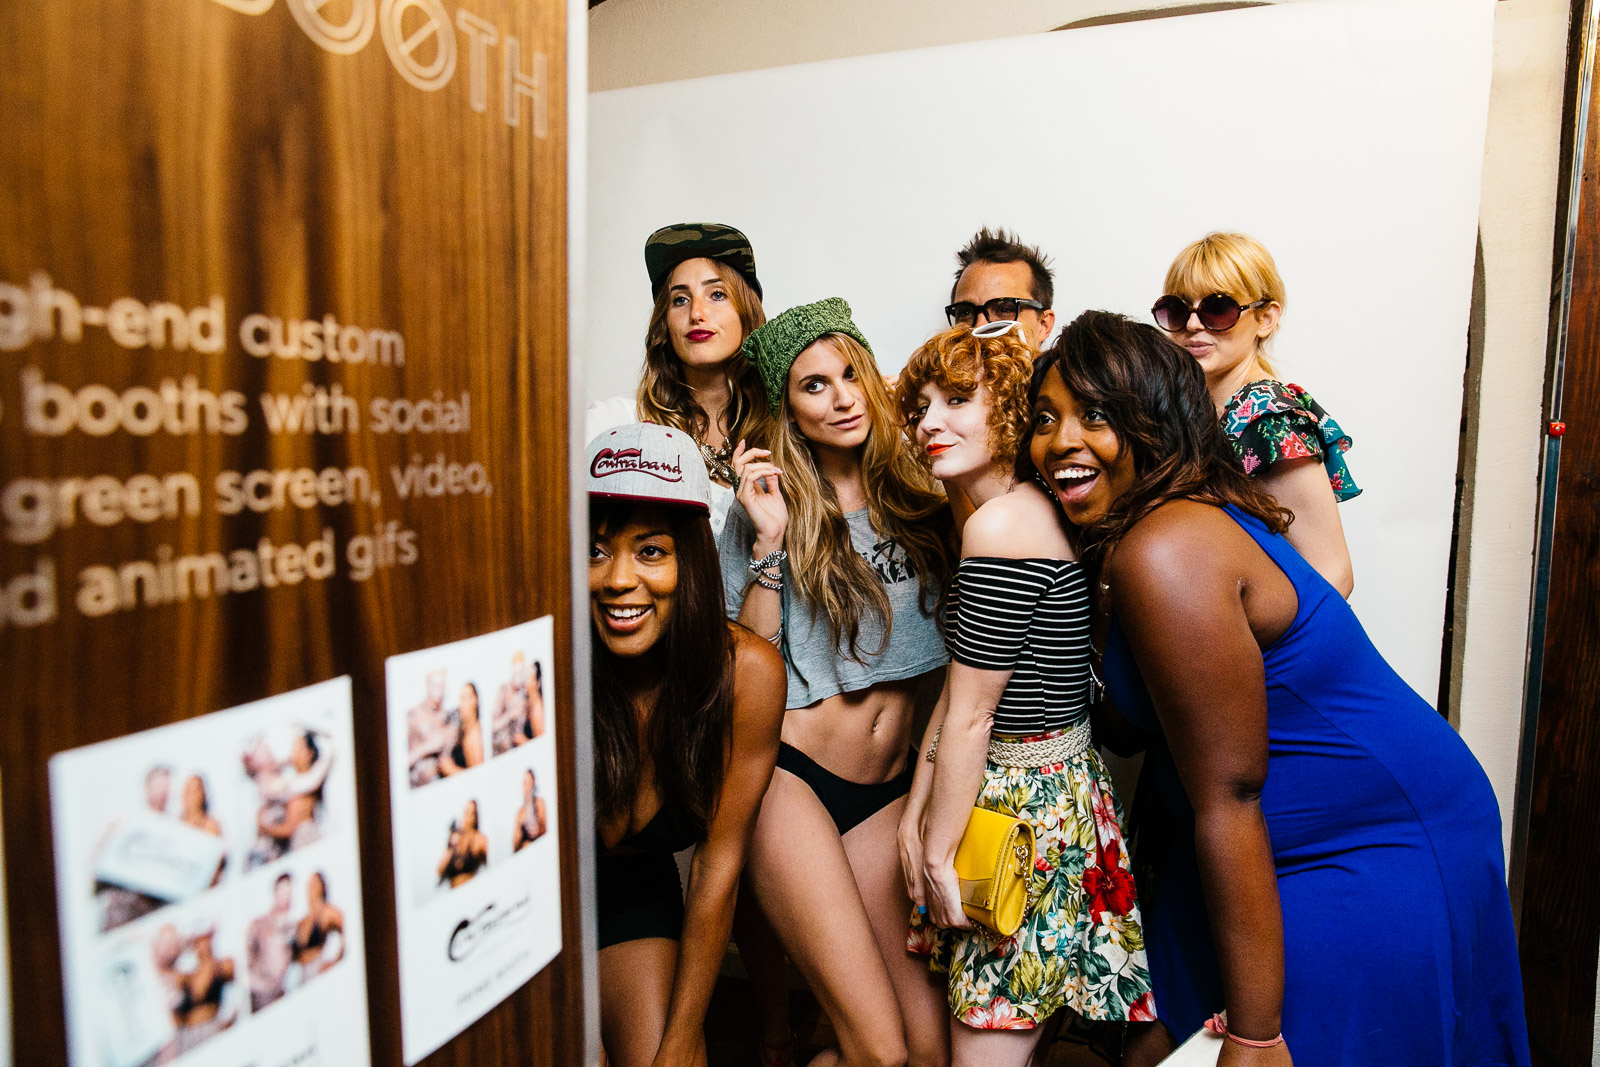 Best Photo Booth Rentals in Los Angeles - Custom, Open Air Photo Booths